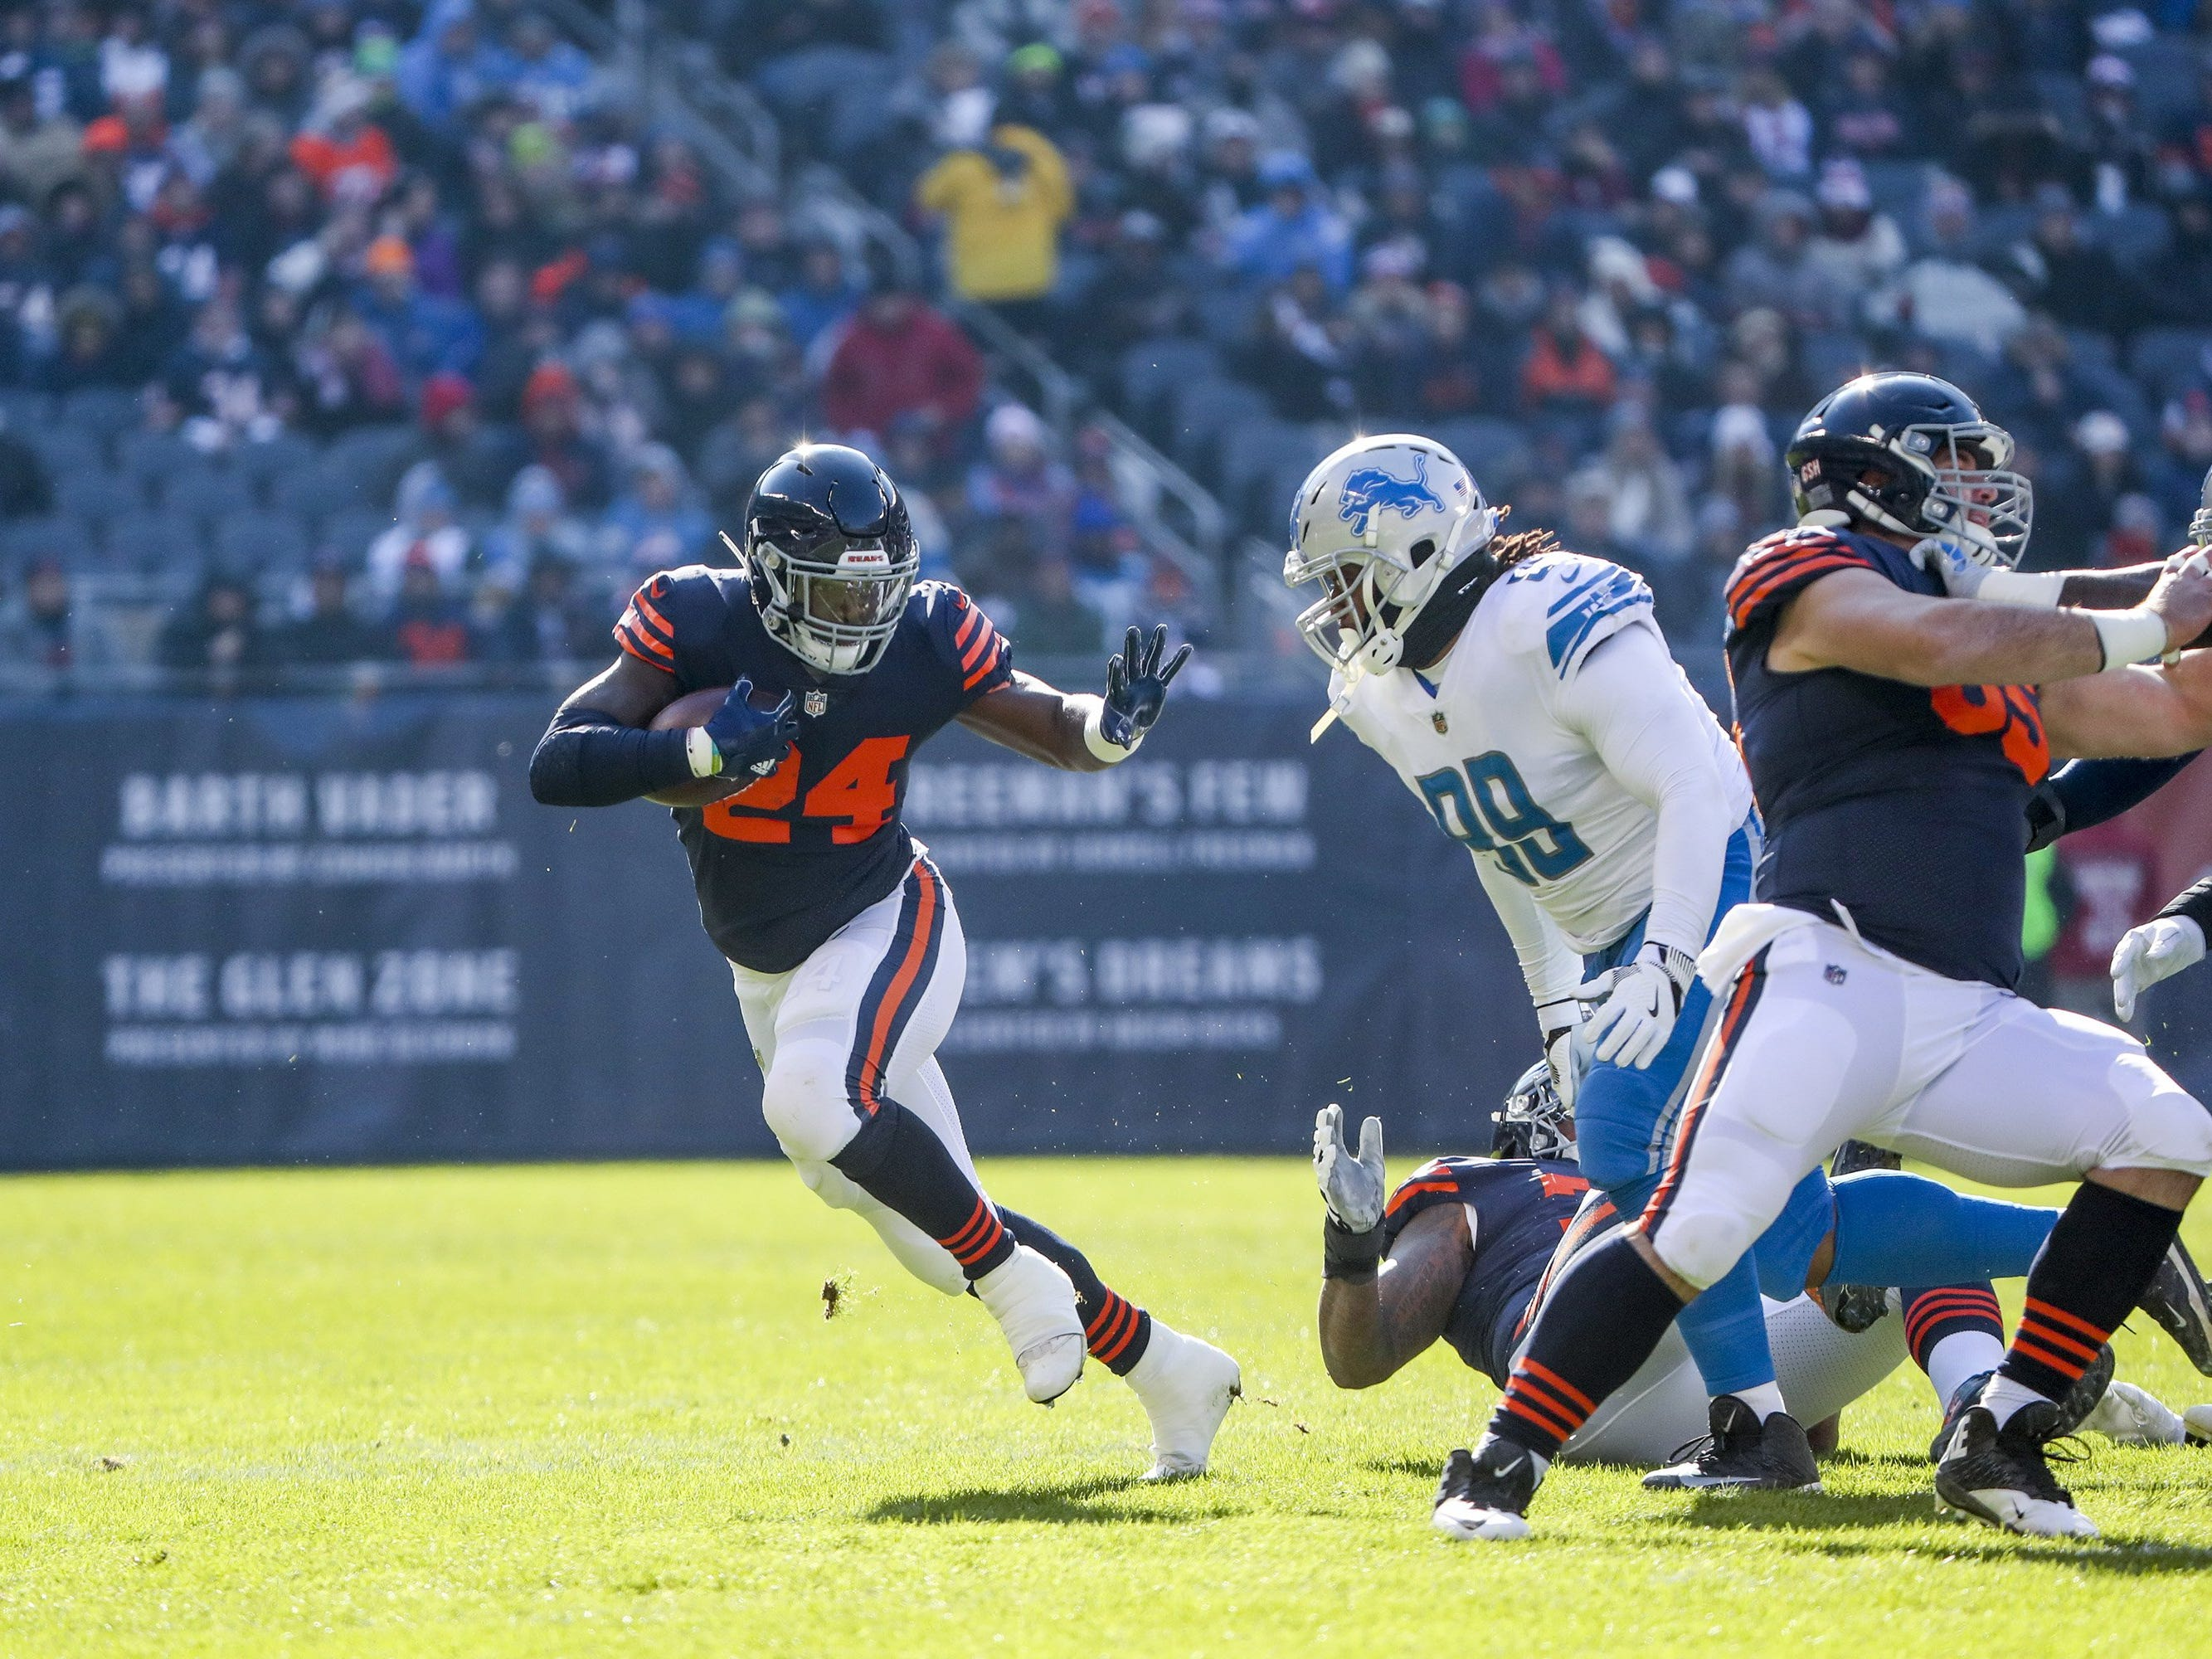 Chicago Bears running back Jordan Howard runs the ball during the first half against the Detroit Lions on Nov. 19, 2017 at Soldier Field in Chicago.